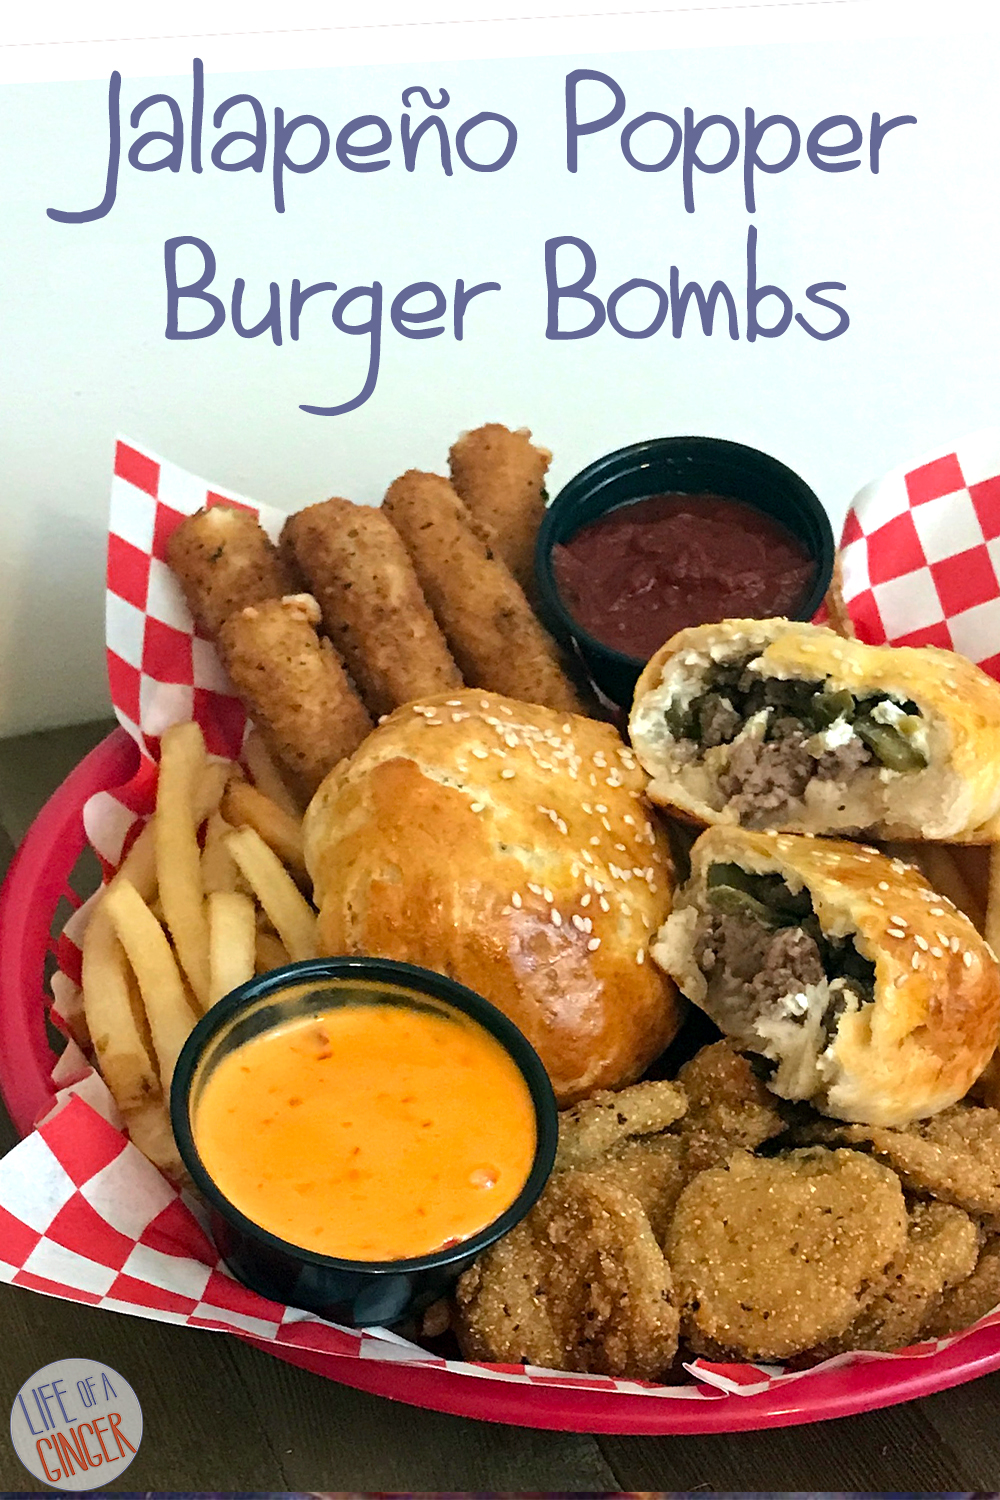 basket with fried food and burger bombs